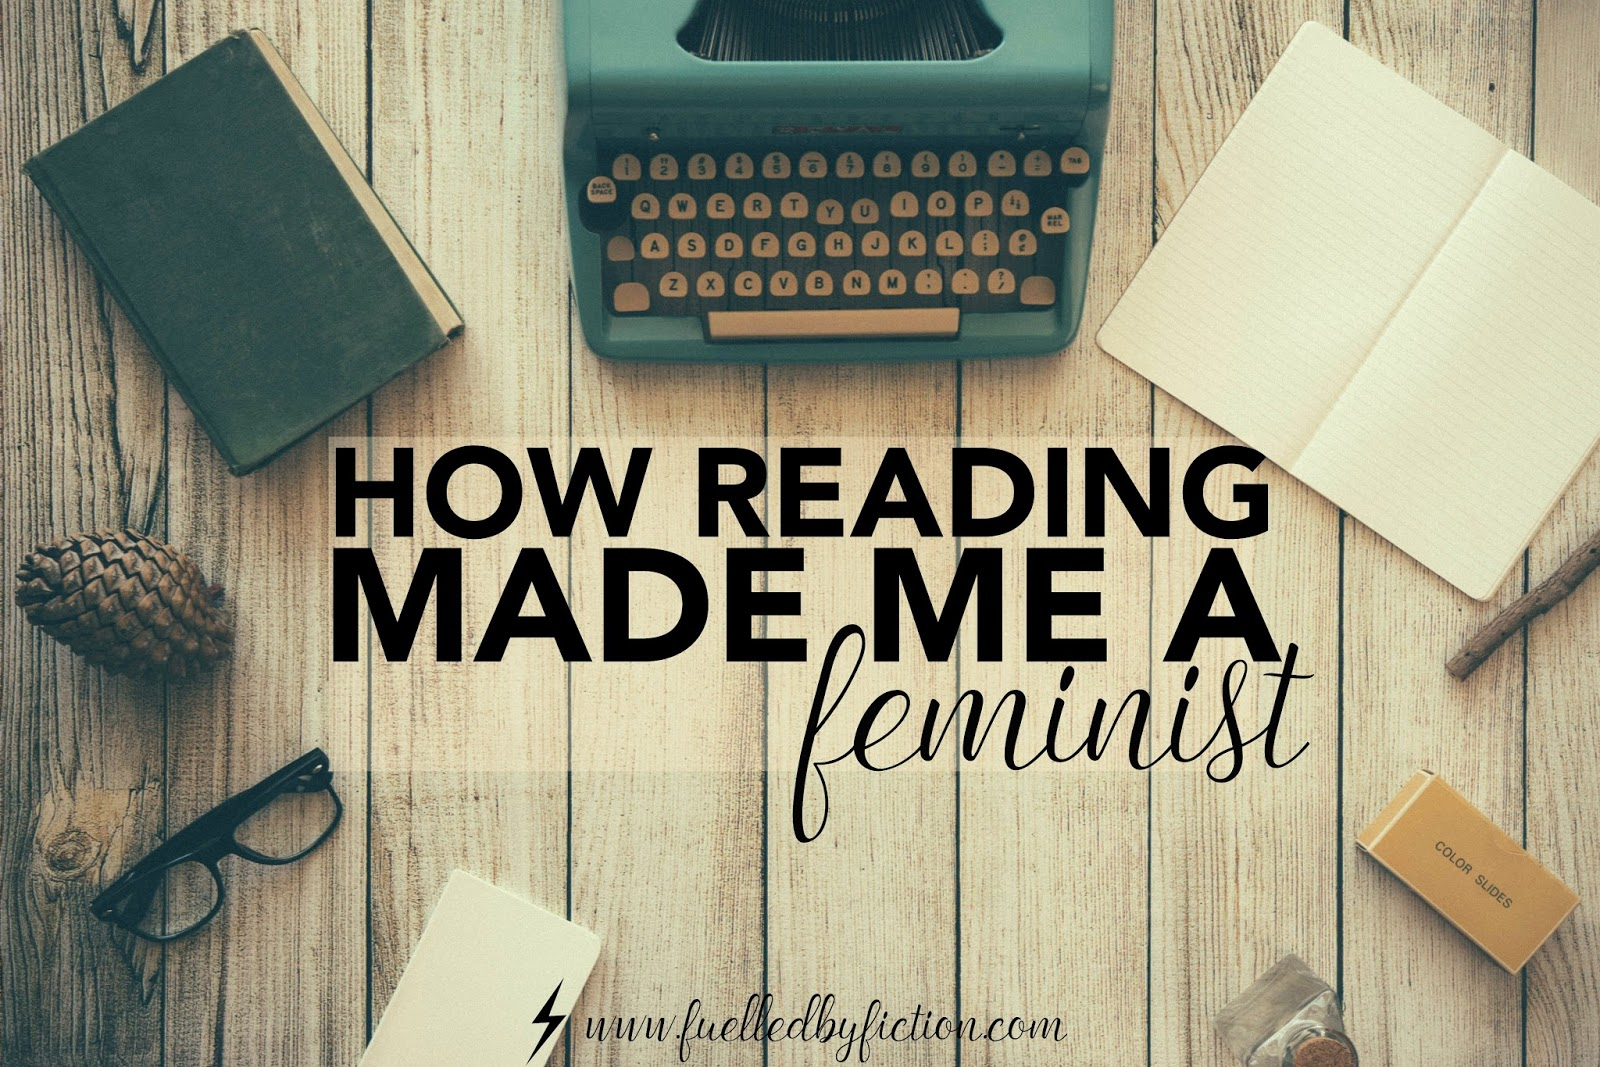 Books and Feminism, How Reading Made Me a Feminist